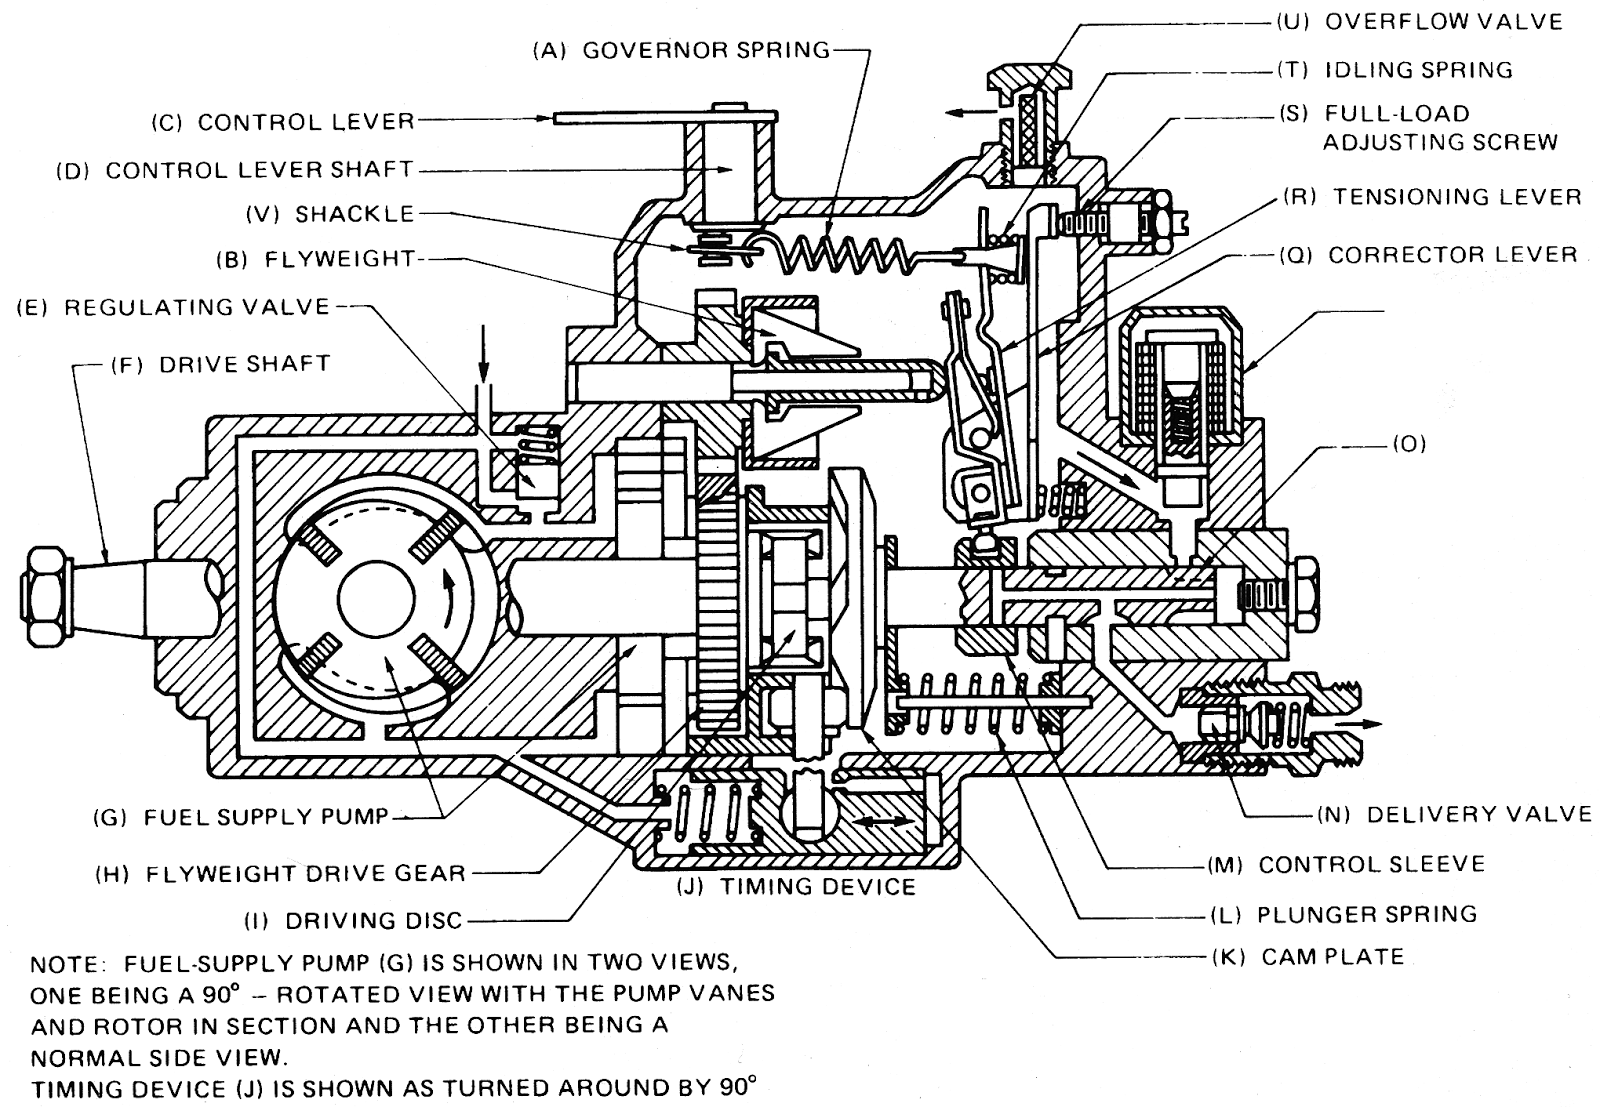 medium resolution of delphi injection pump parts within diagram wiring and lucas fuel injector pump parts cav fuel injection pump diagram